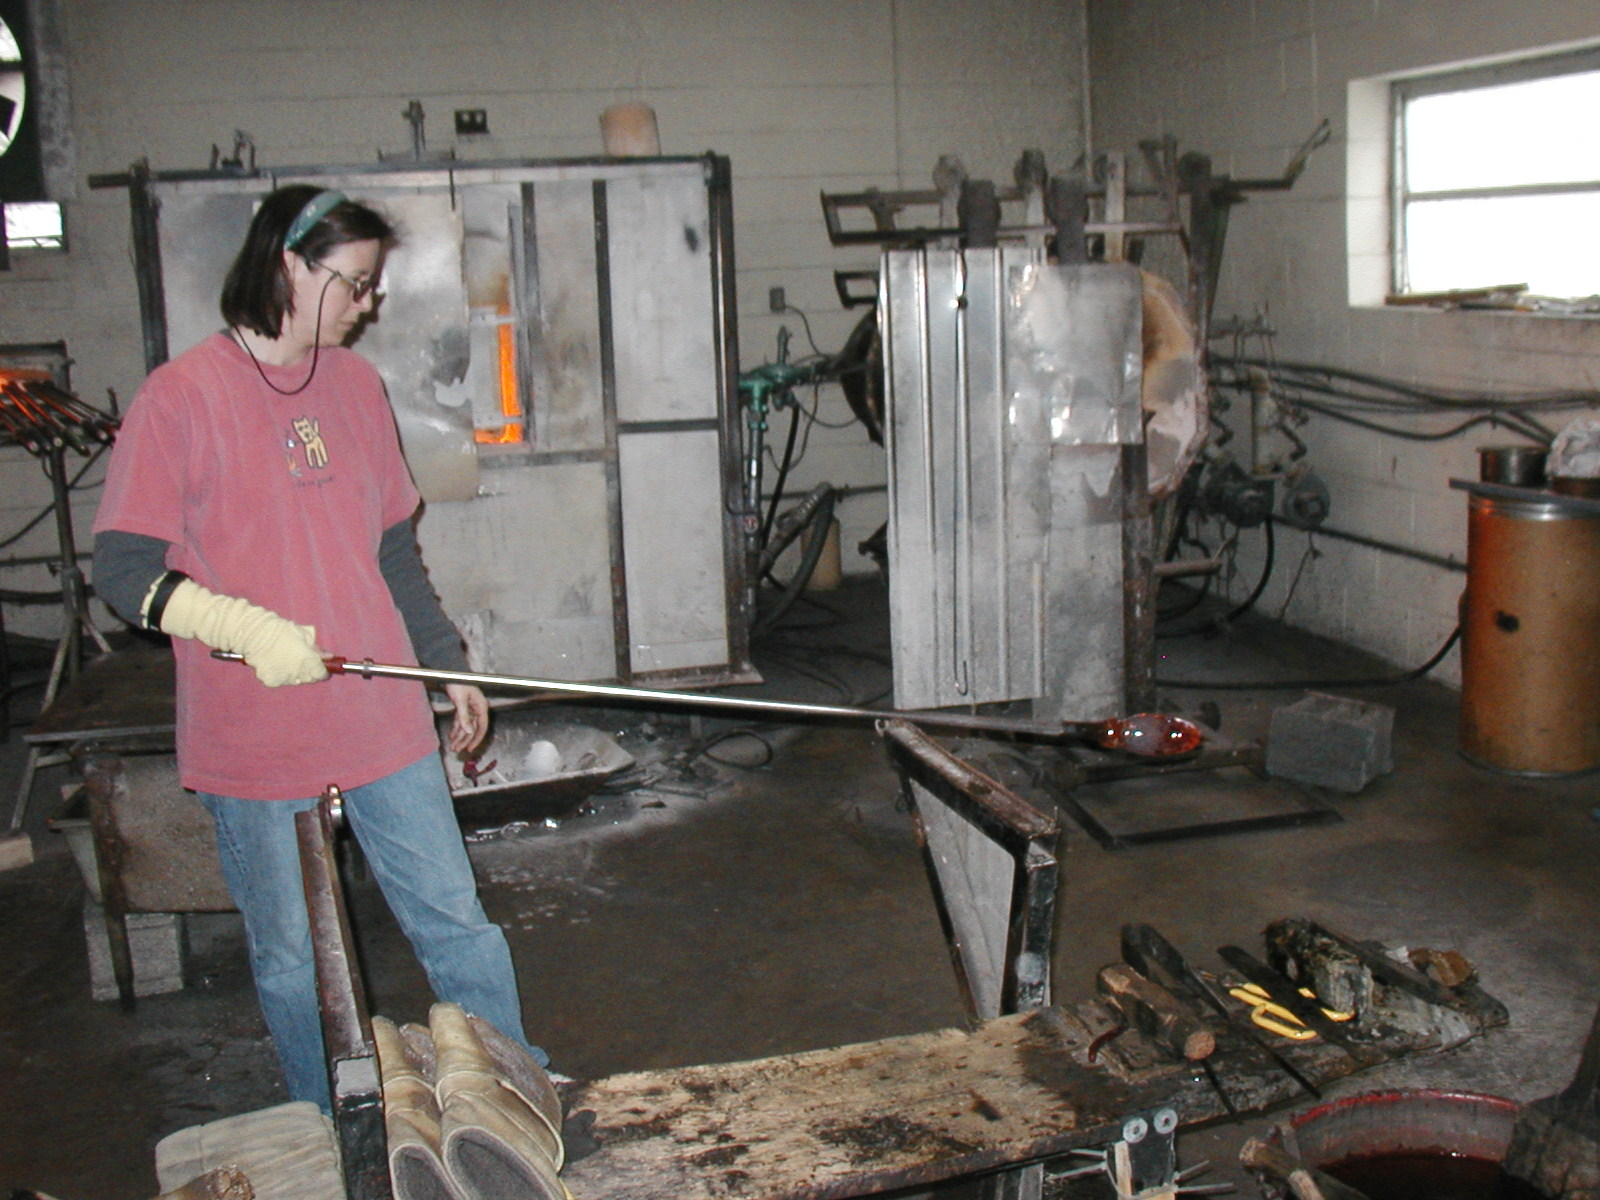 Glassblower.Info - Joel Bless Glasslight Glassblowing class January 18 2004 #054